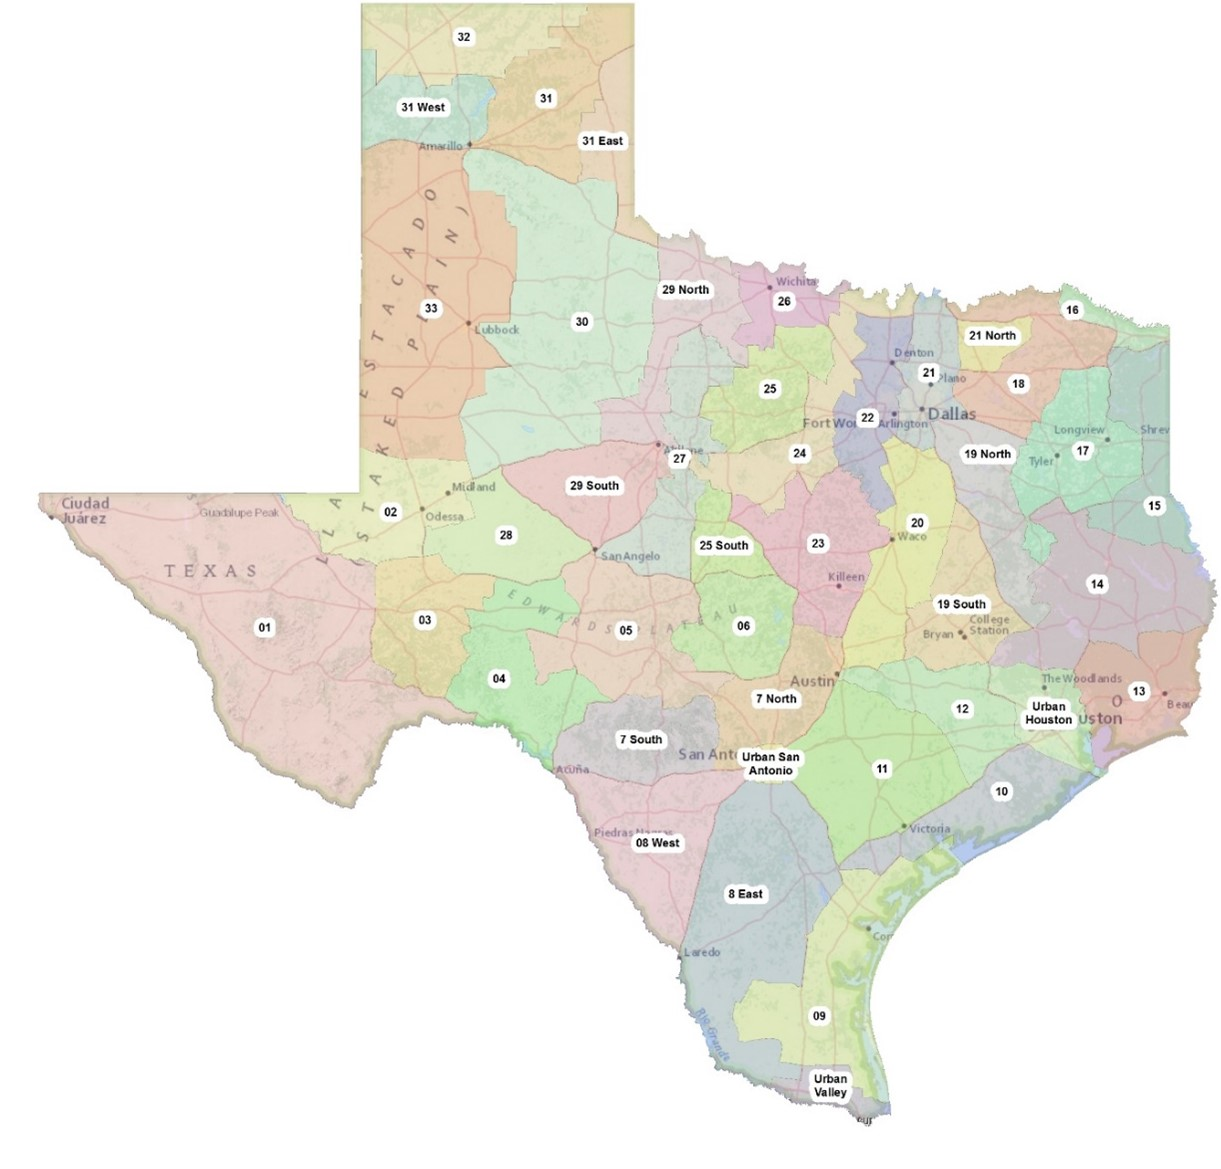 Texas Rut Map 2020 Texas deer hunting forecast excellent despite ongoing pandemic